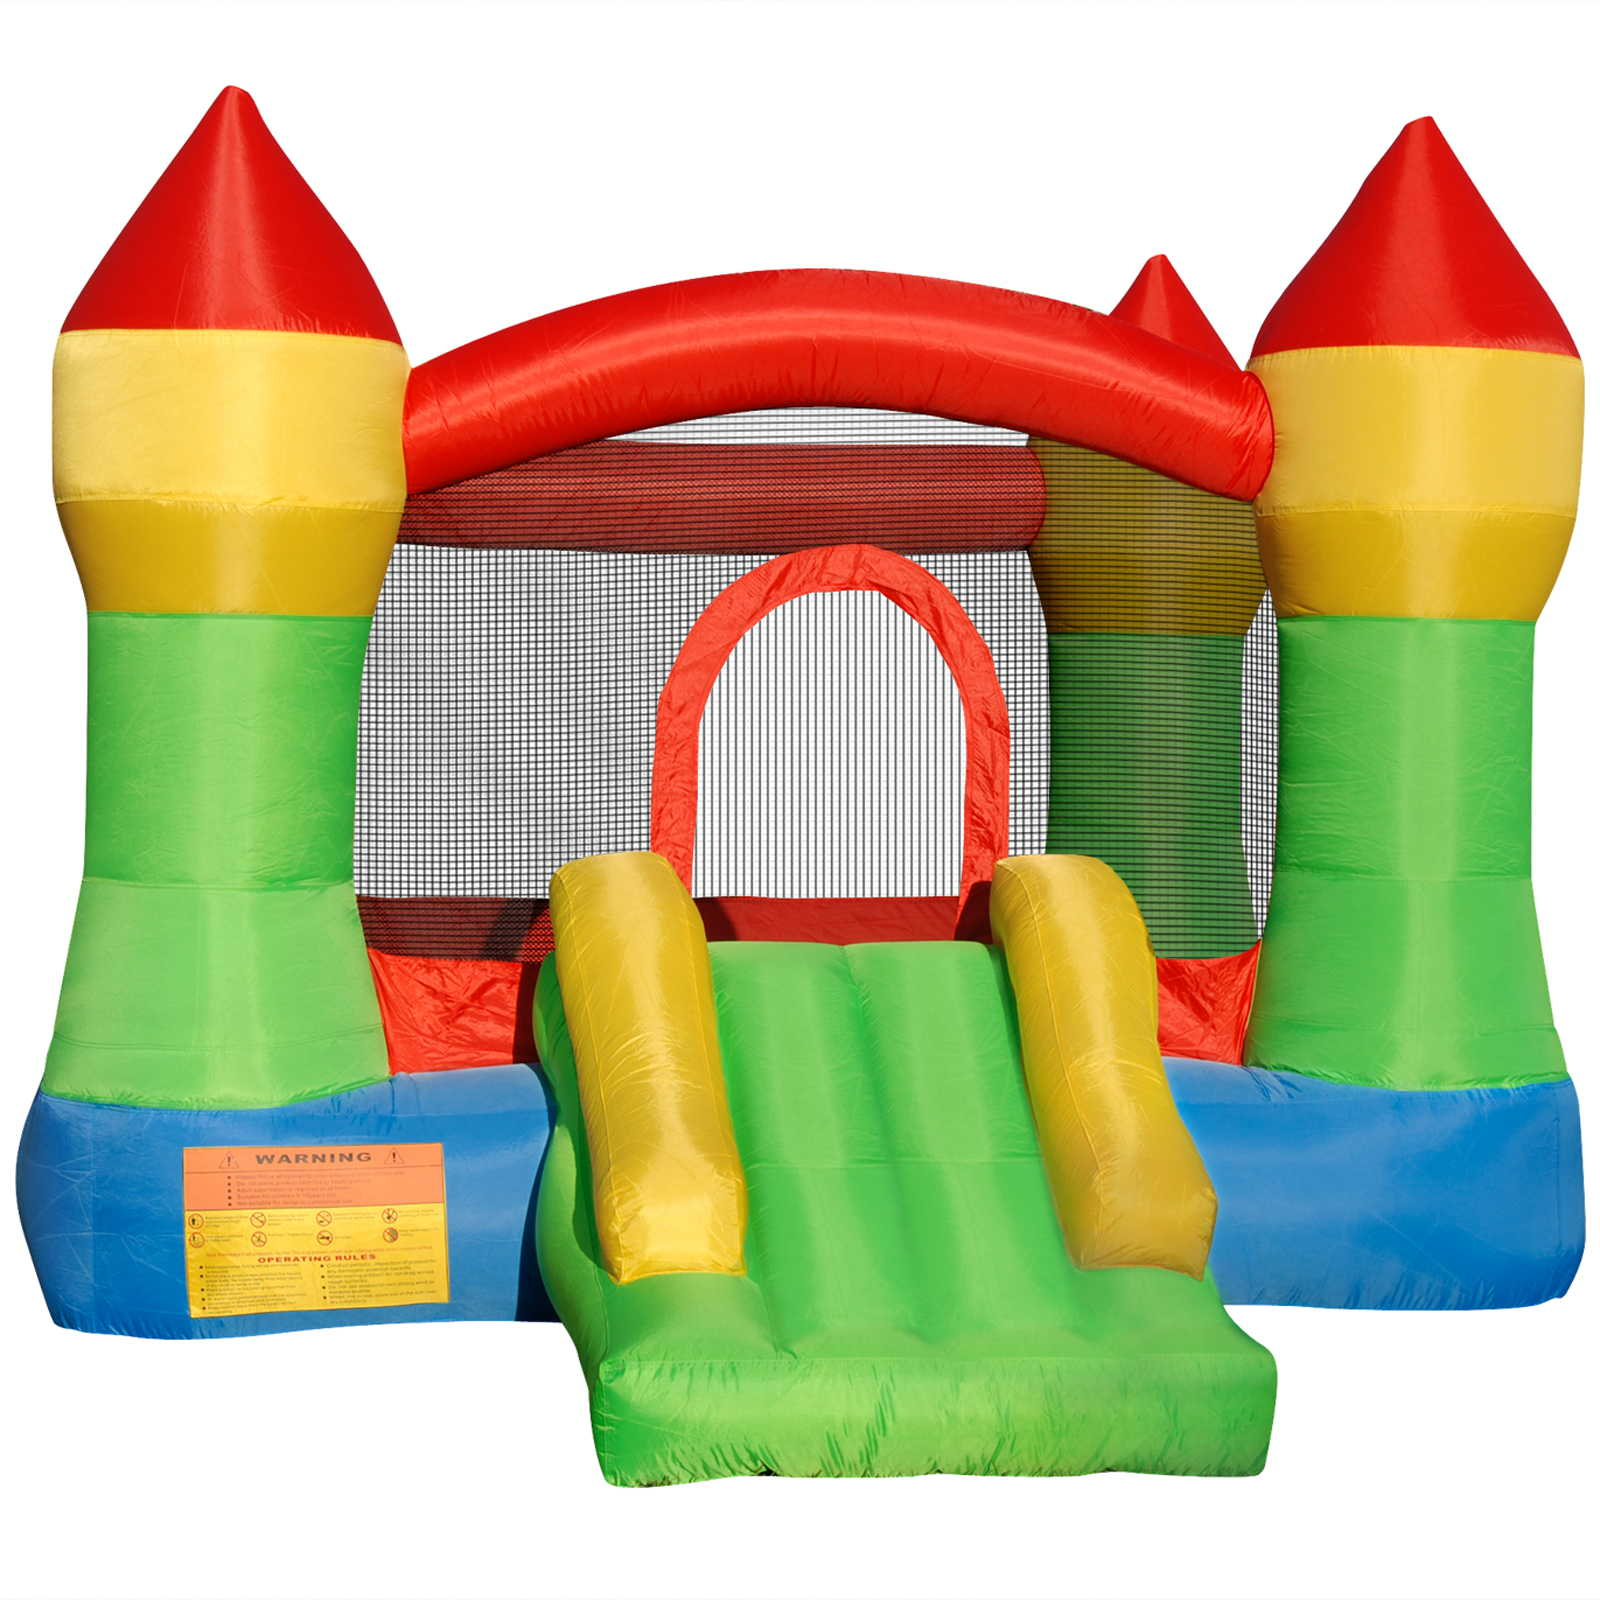 Cloud 9 Mighty Bounce House - Inflatable Castle Theme Bouncing Jump & Slide without Blower